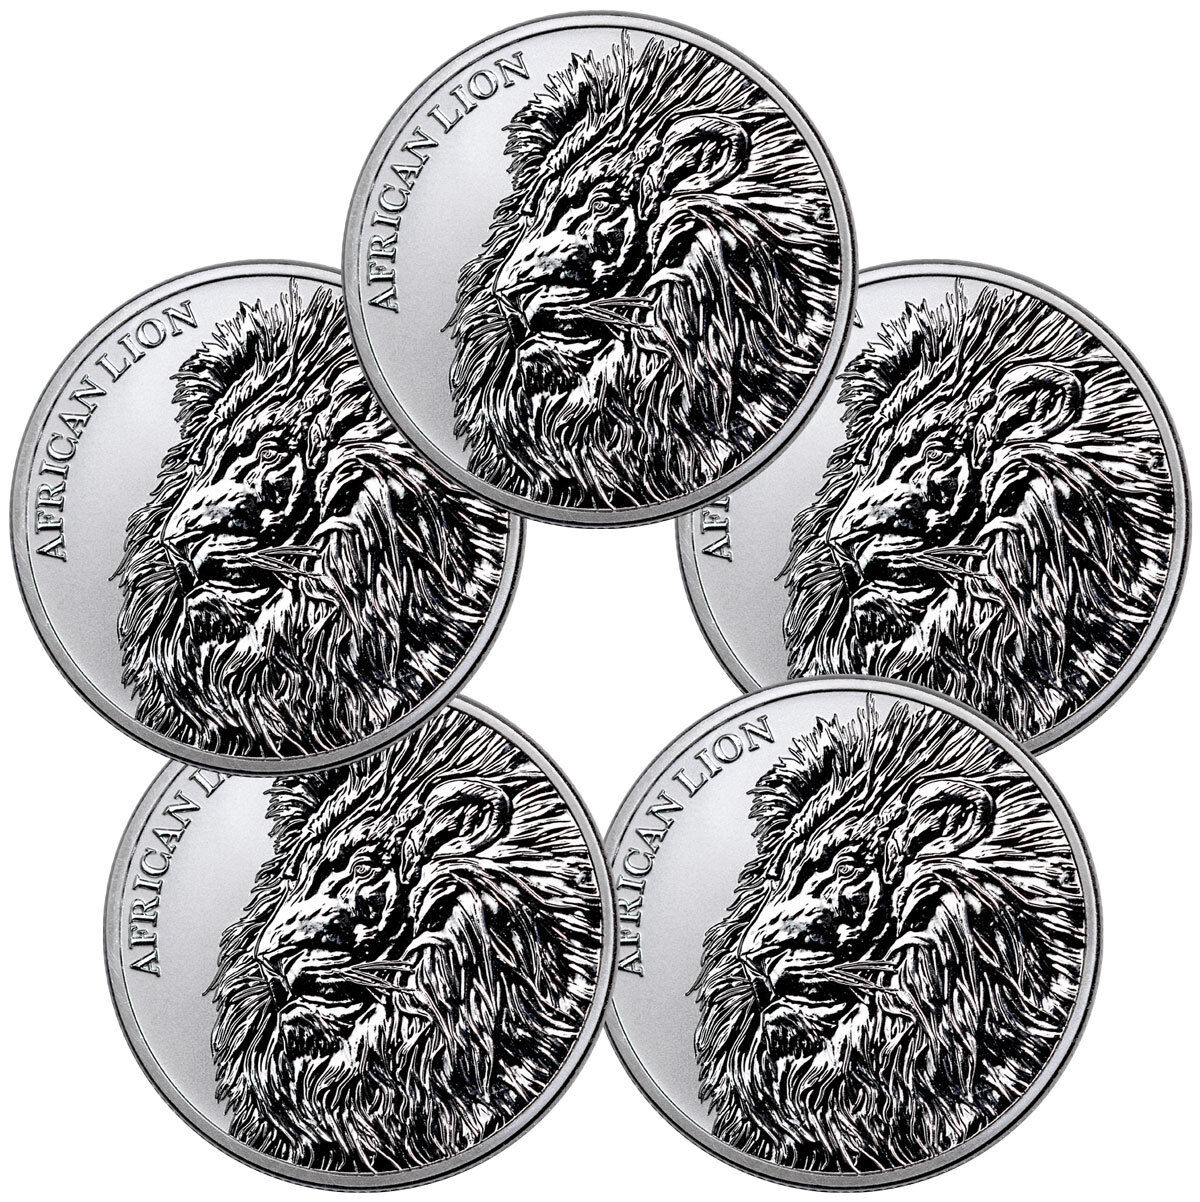 LOT OF 5 2018 REPUBLIC OF CHAD AFRICAN LION 1 OZ SILVER GEM BU COINS SKU51642